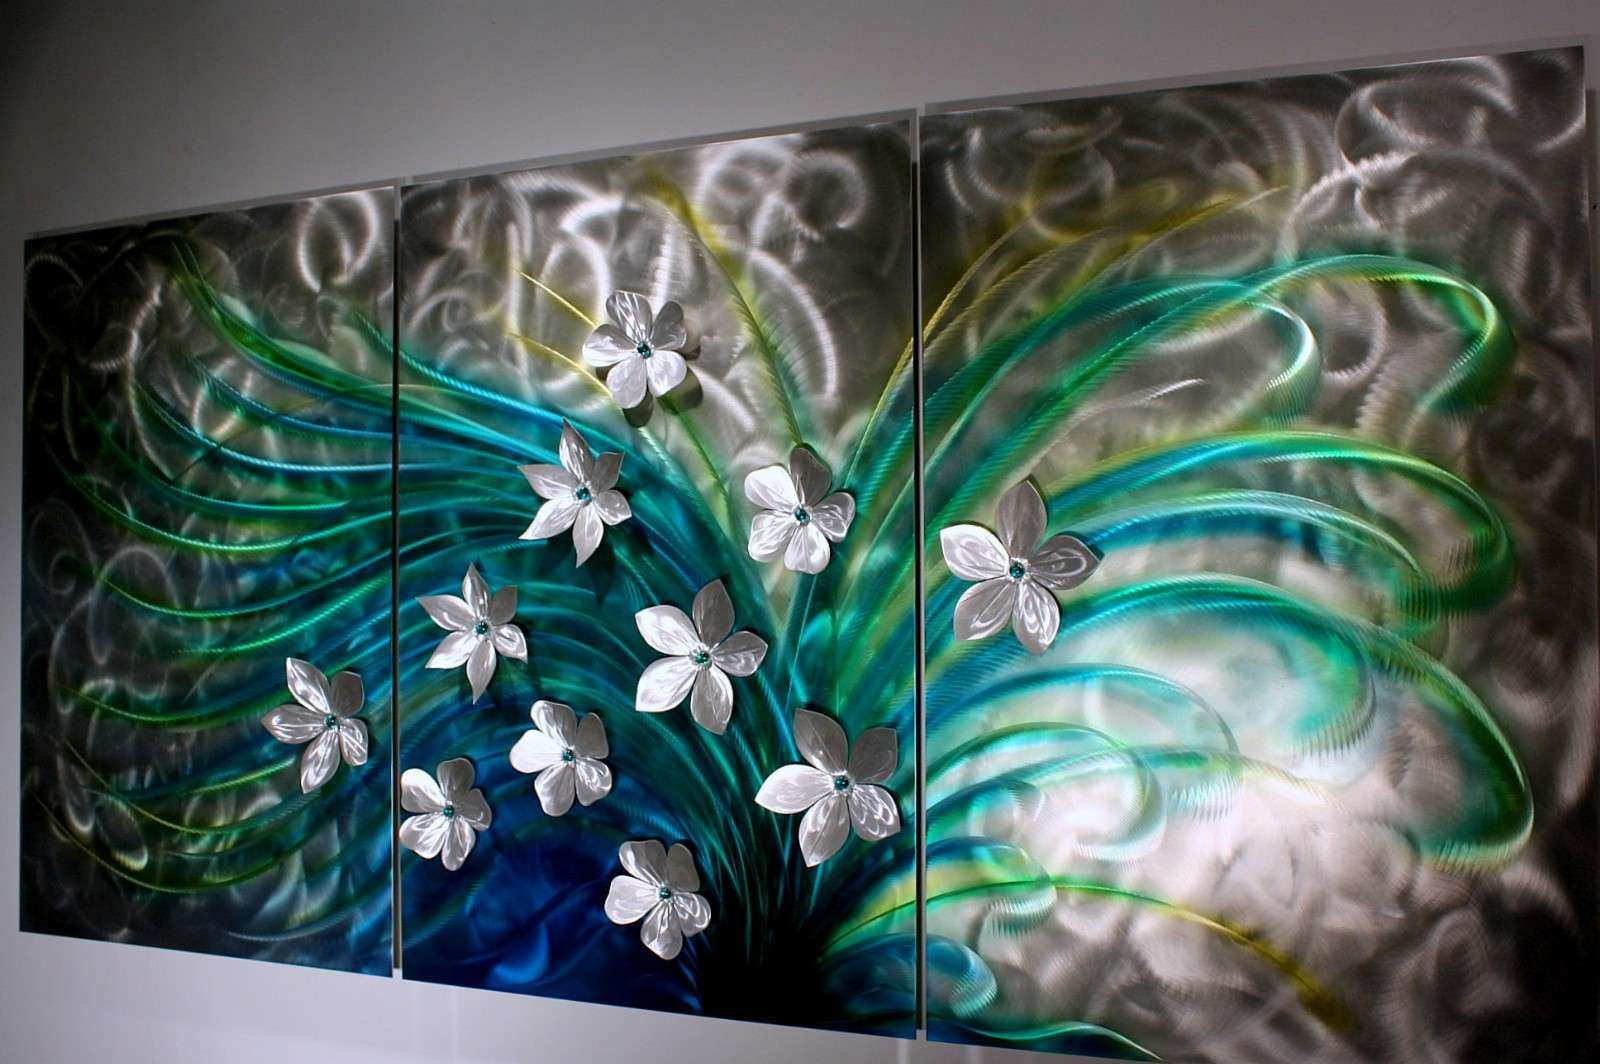 Metal Wall Art Decor And Sculptures Elegant Floral Art Metal Wall Sculpture  Abstract Home Decor